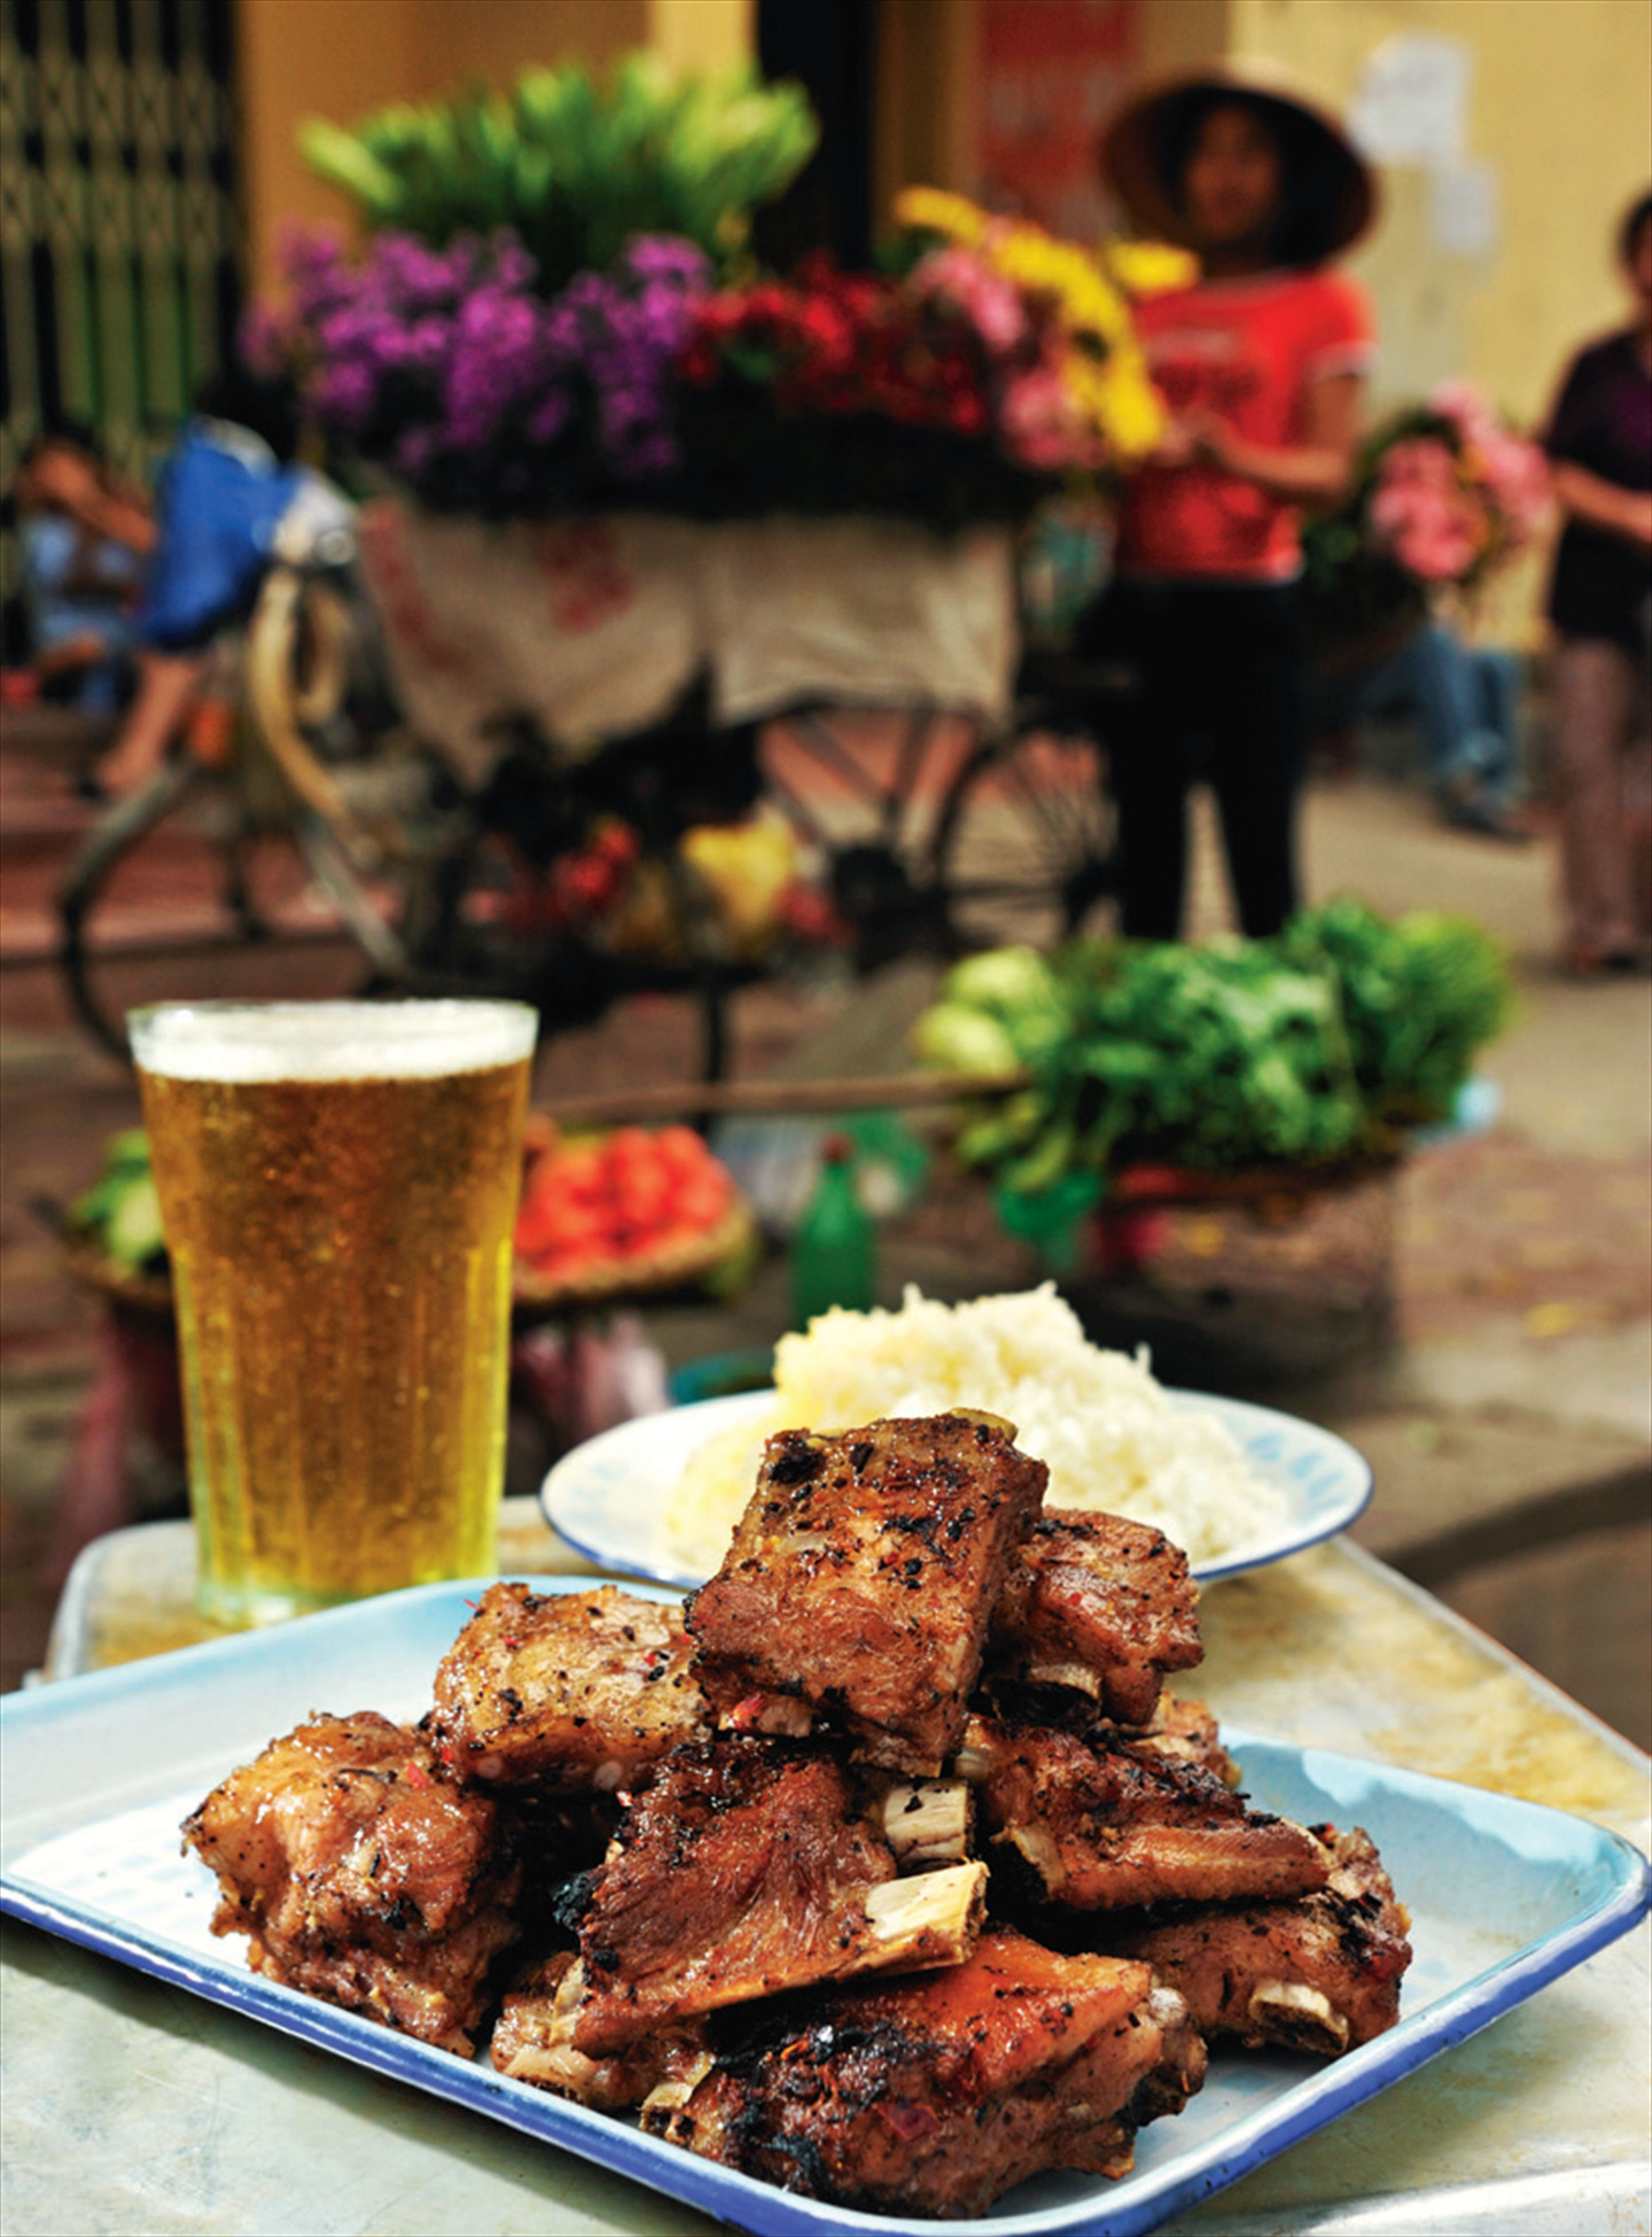 Barbecued pork ribs